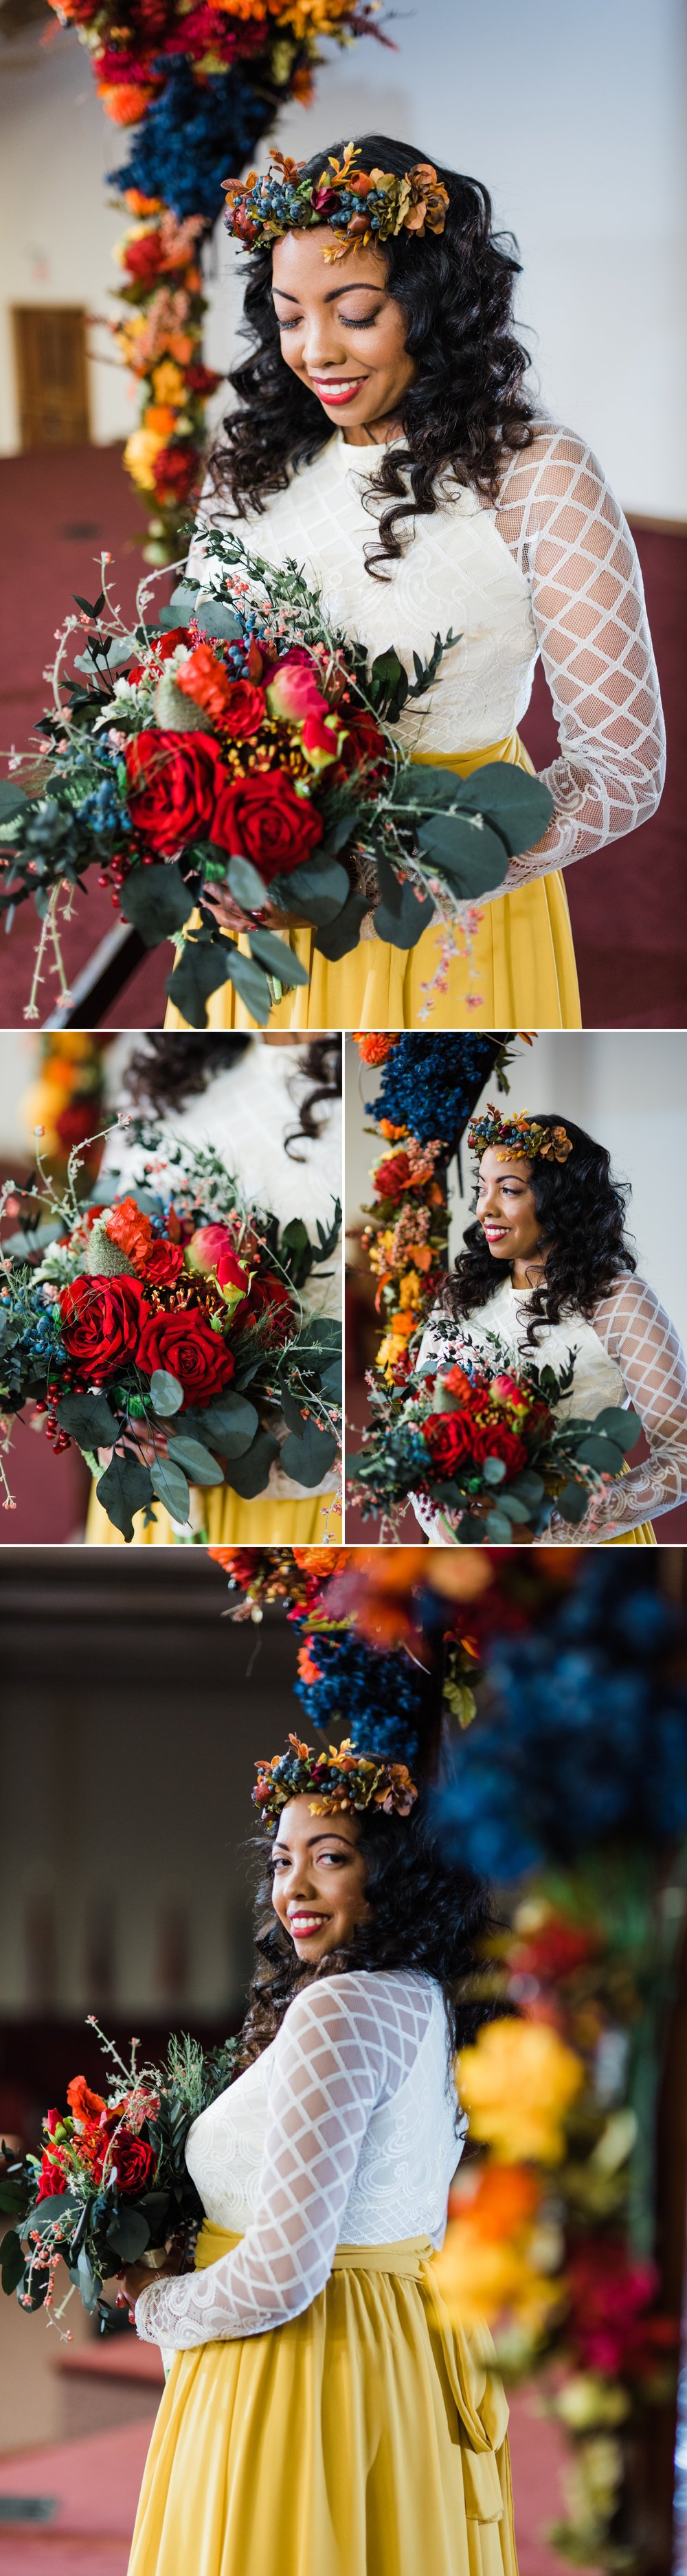 Colorful Bohemian Wedding and Housewarming Reception in Indianapolis_0001.jpg